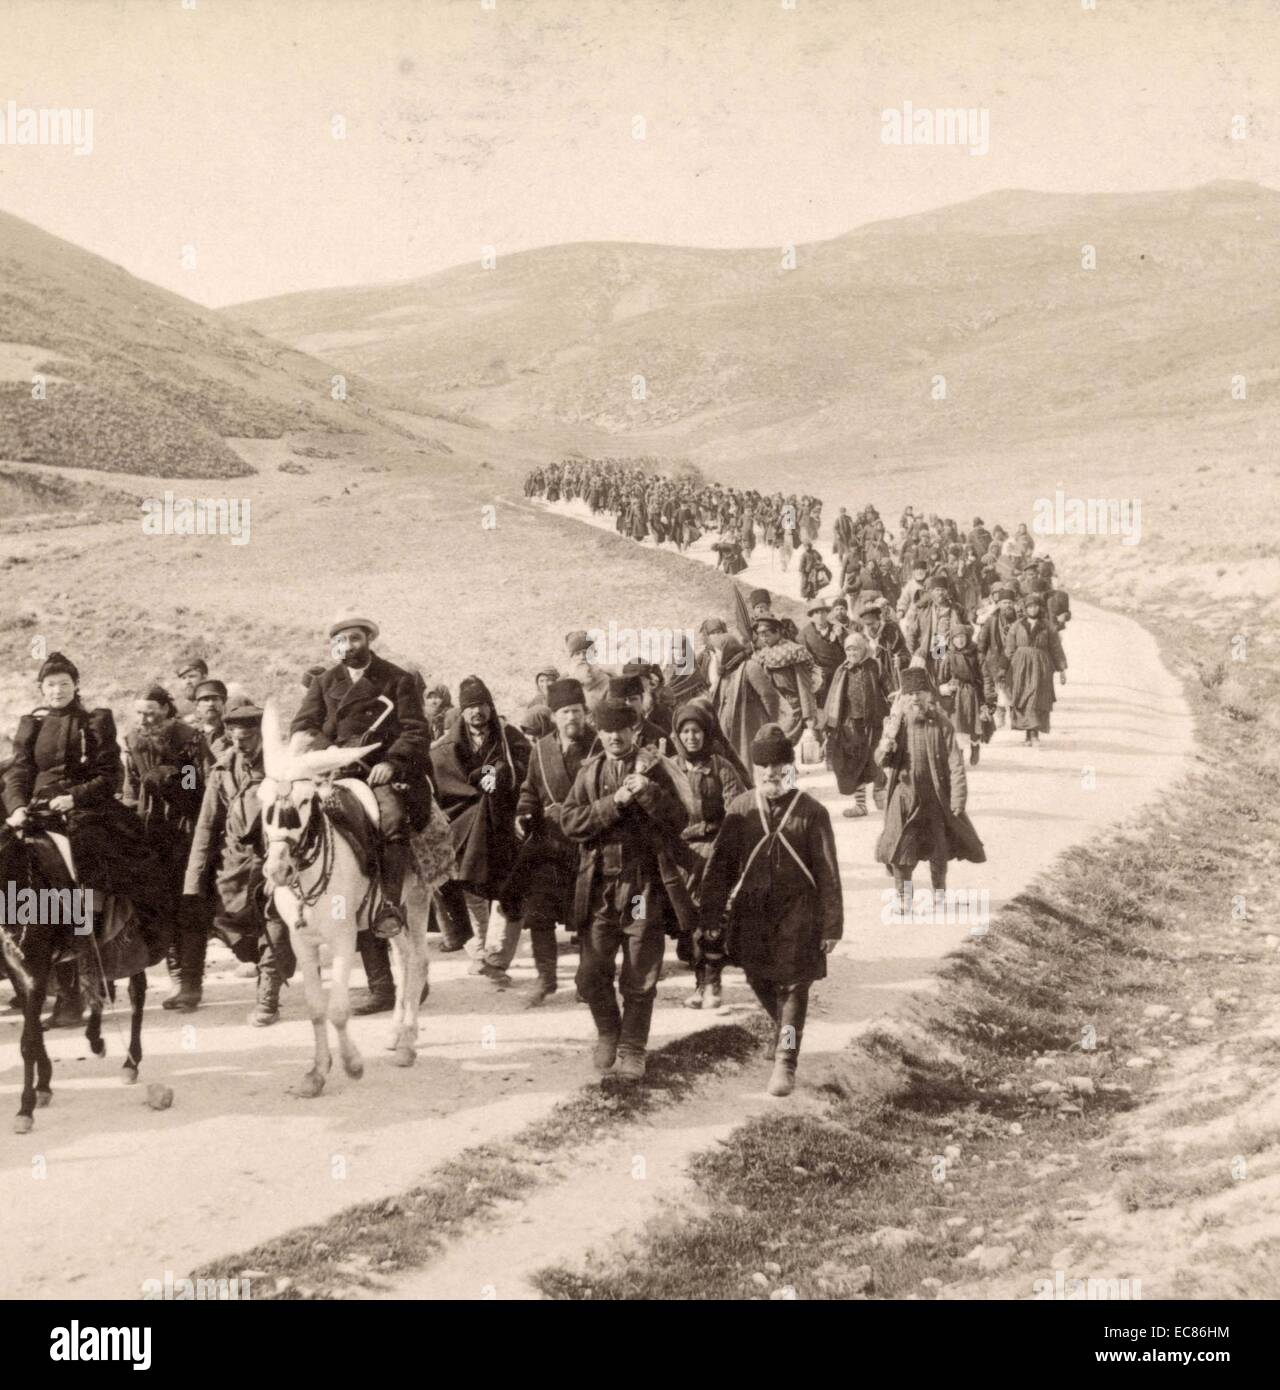 Photograph of Russian Pilgrims on the way to Jericho in Palestine. Dated 1899 - Stock Image